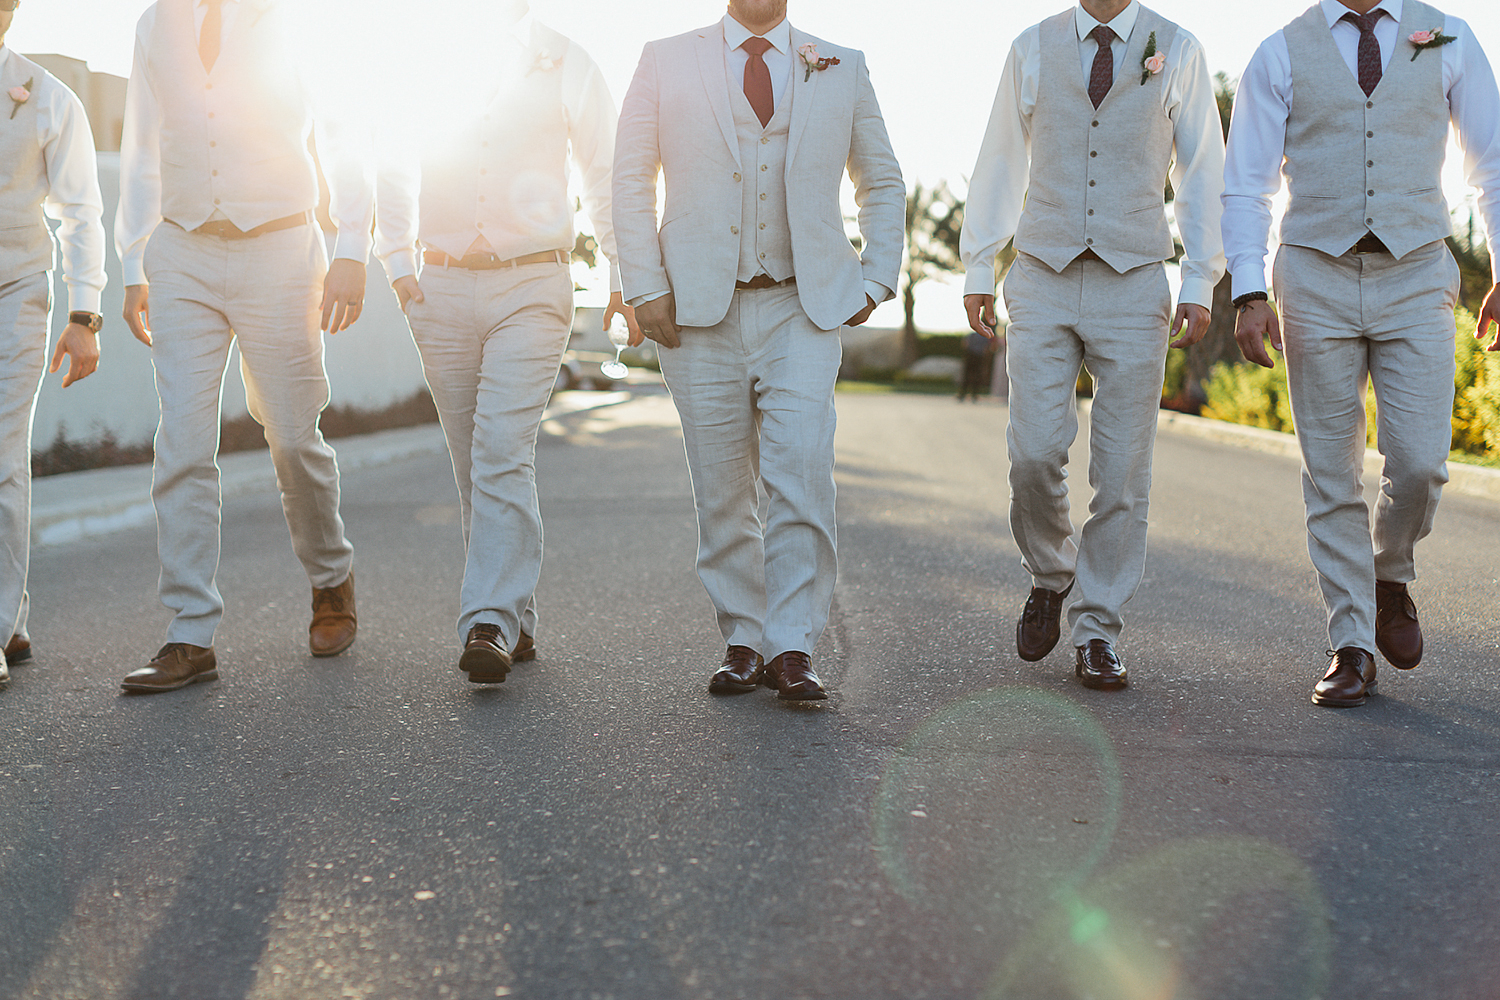 cabo-san-lucas-wedding-travelling-destination-wedding-photographer-toronto-wedding-photographers-3b-photography-hipster-trendy-documentary-style-mexico-wedding-groomsmen-badass-bridal-party-photo-inspiration-details-shoes.jpg